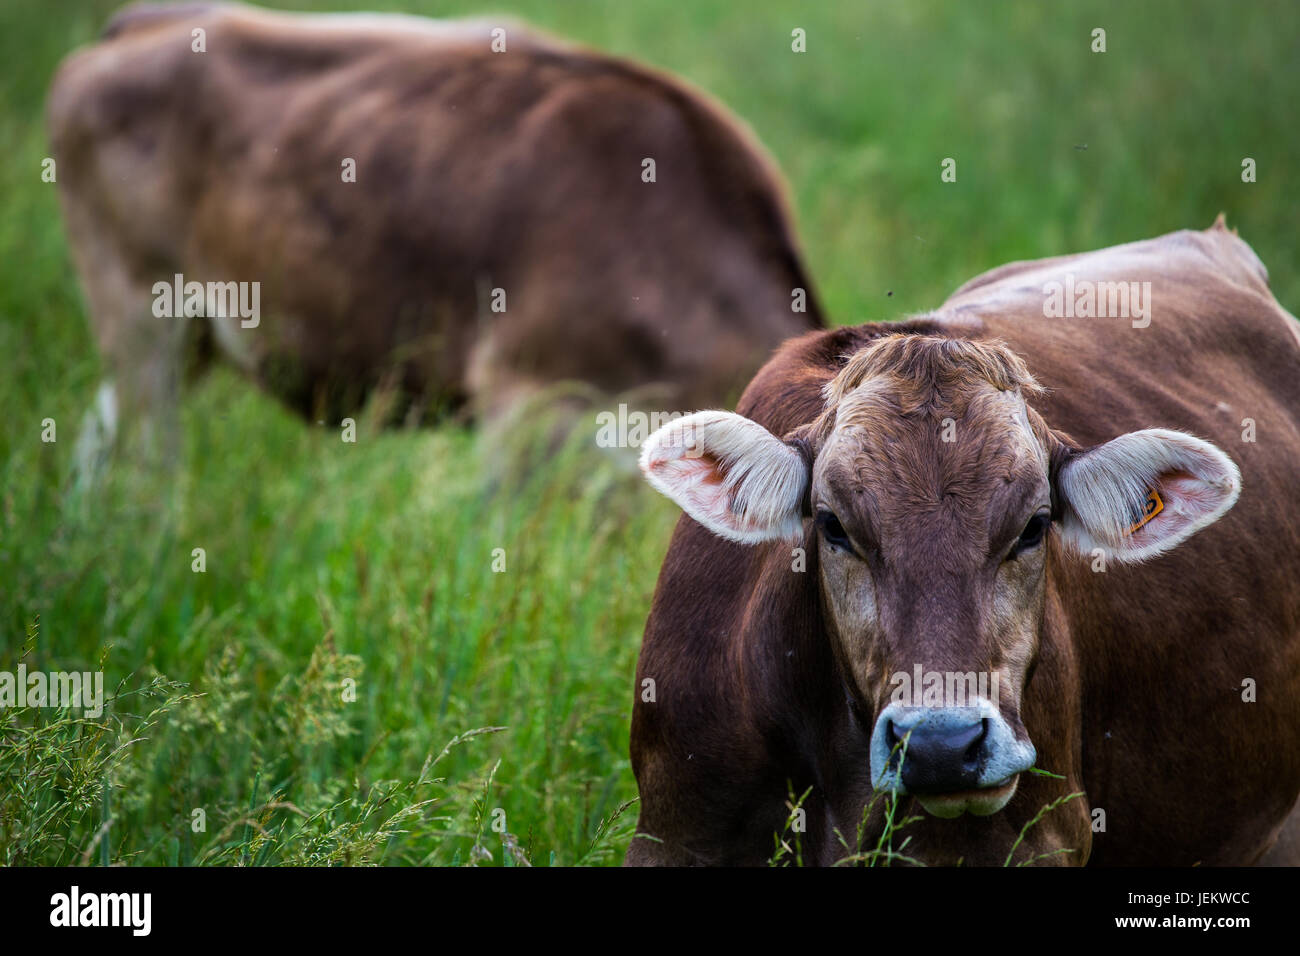 Cow's face (Swiss Braunvieh breed) with other cow grazing on a green meadow in the background. - Stock Image